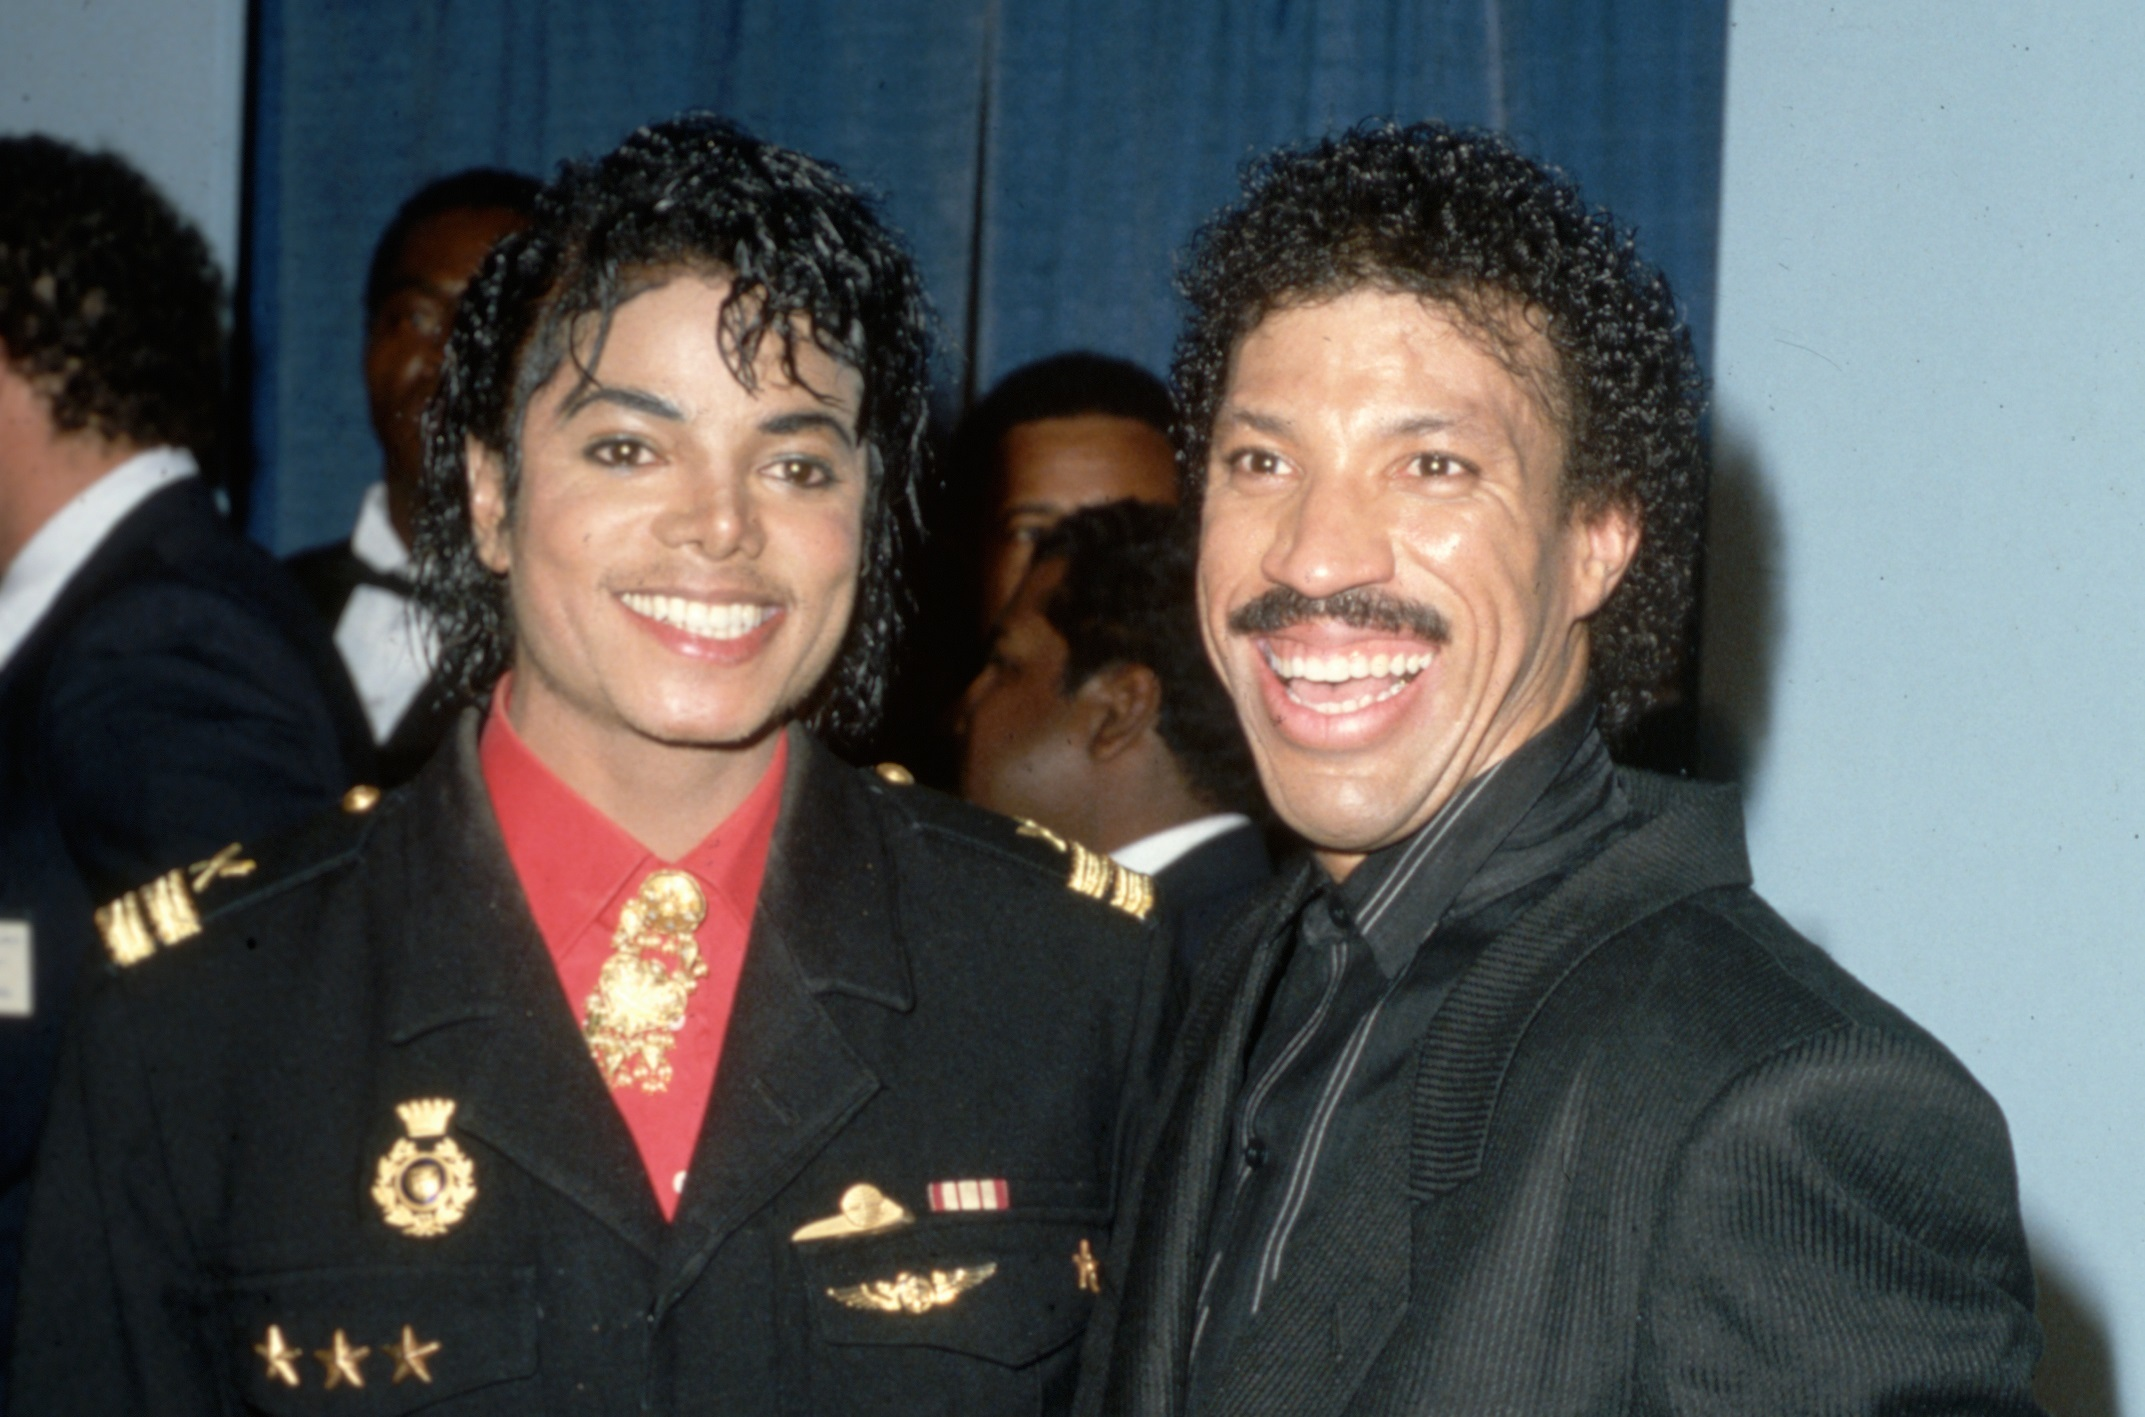 Michael Jackson with Lionel Richie (Lynn Goldsmith/Corbis/VCG via Getty Images)